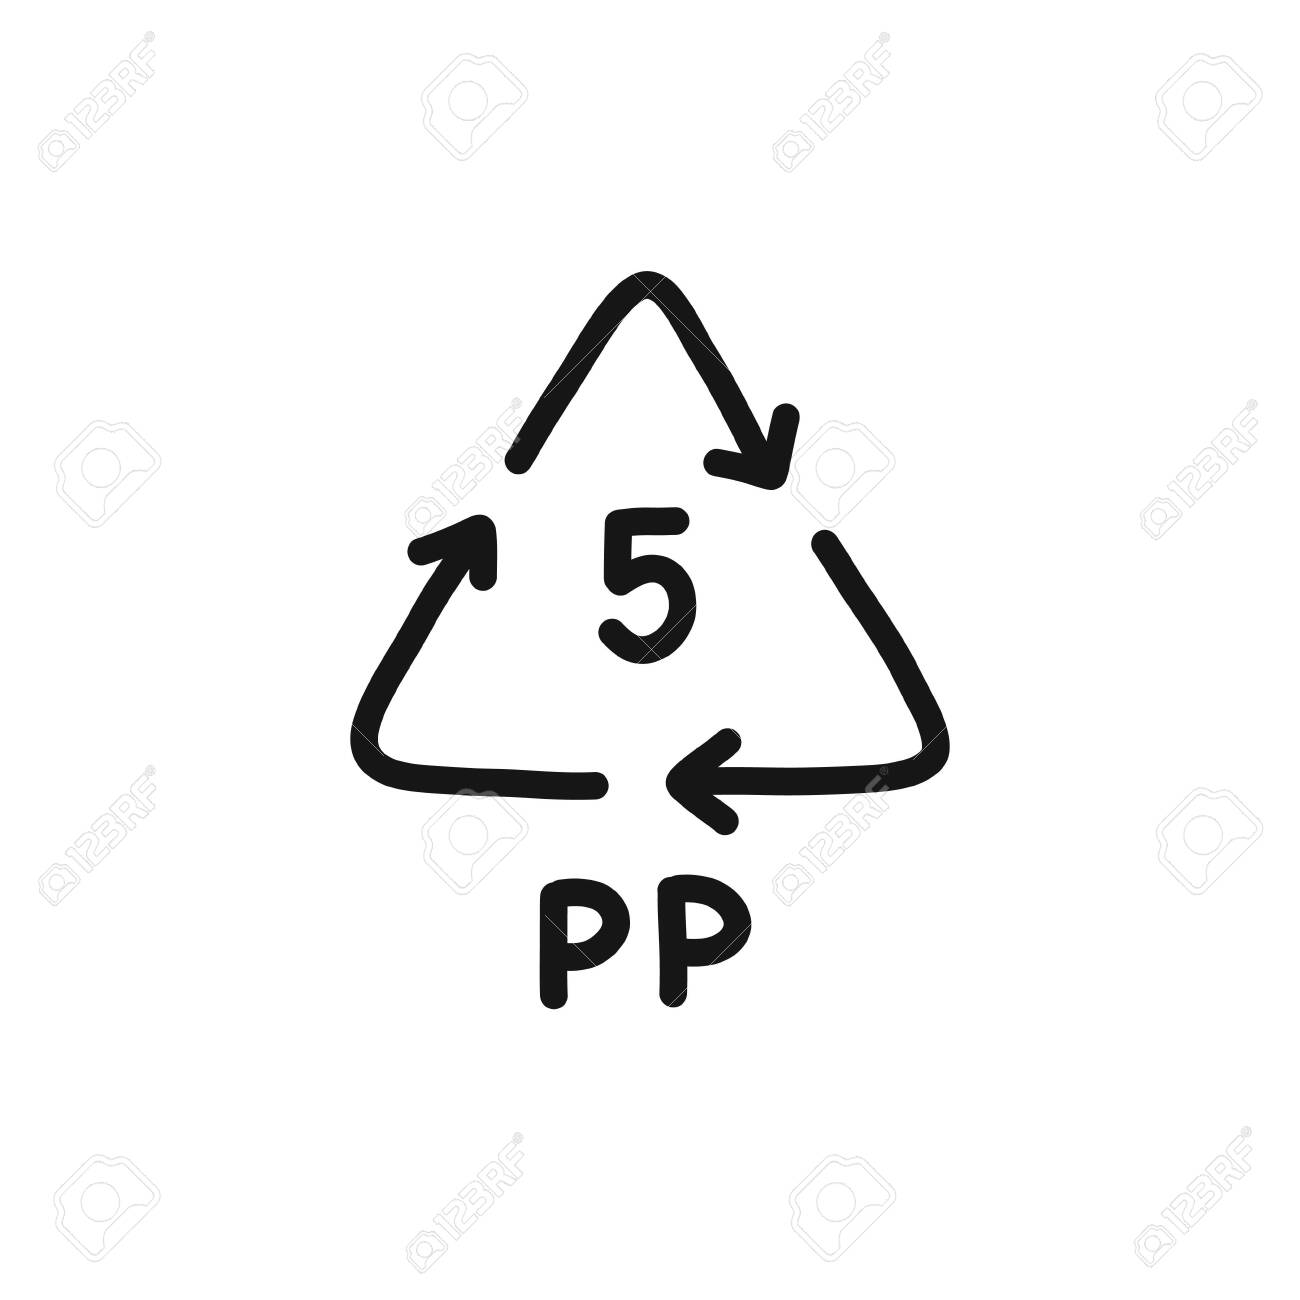 plastic types for recycling symbol doodle icon, vector color illustration - 145756342